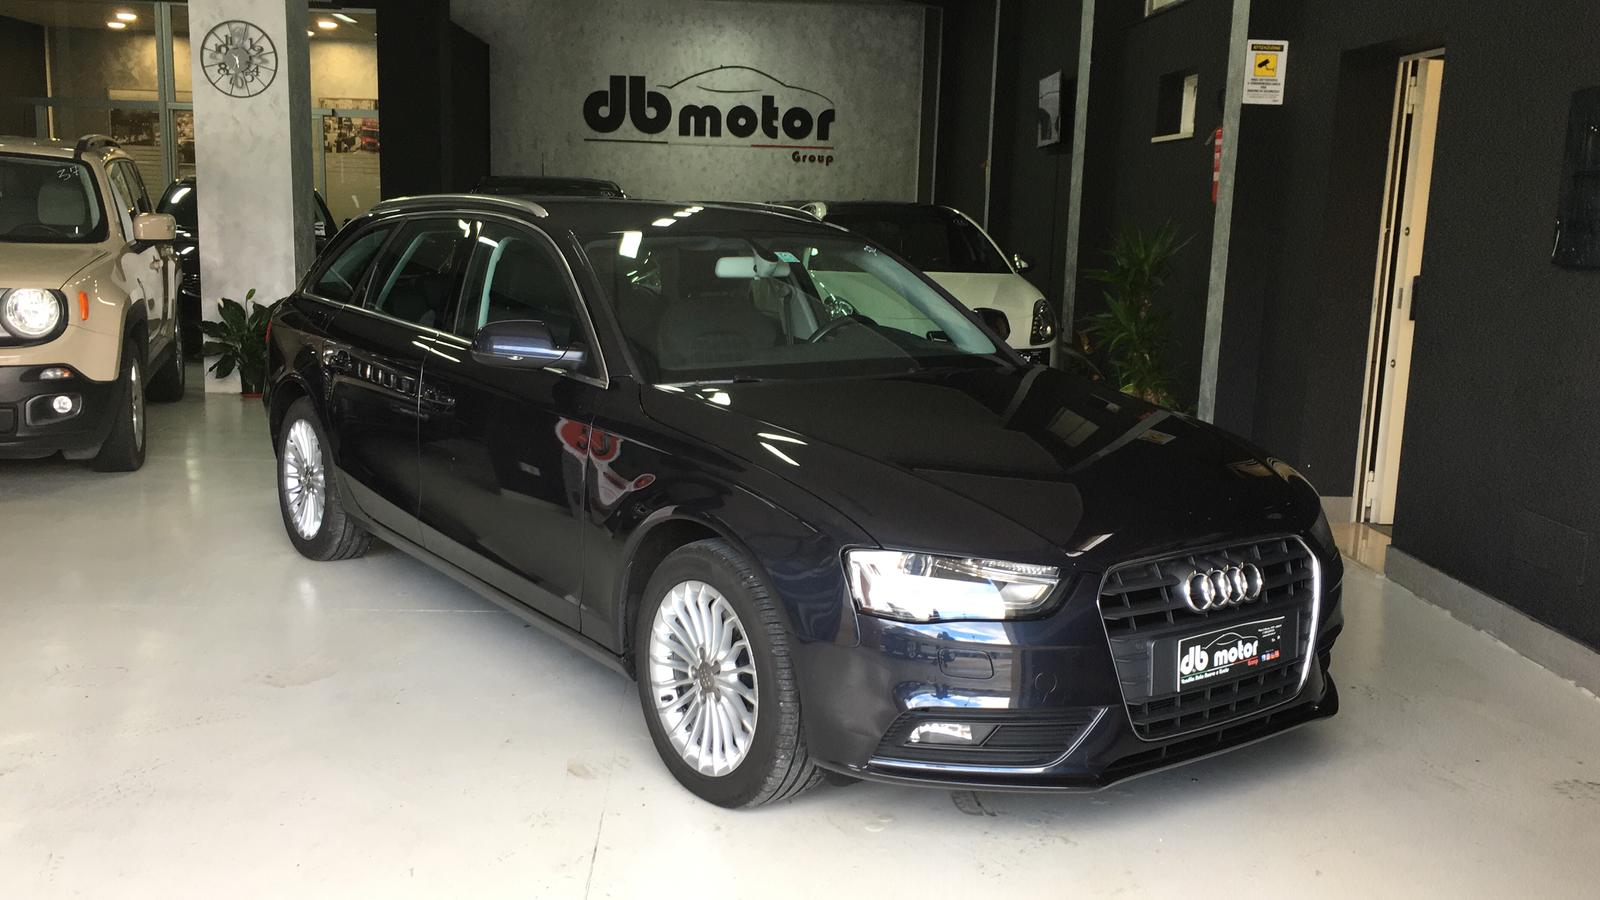 Audi A4 Avant 2.0 TDI 150 CV multitronic Business